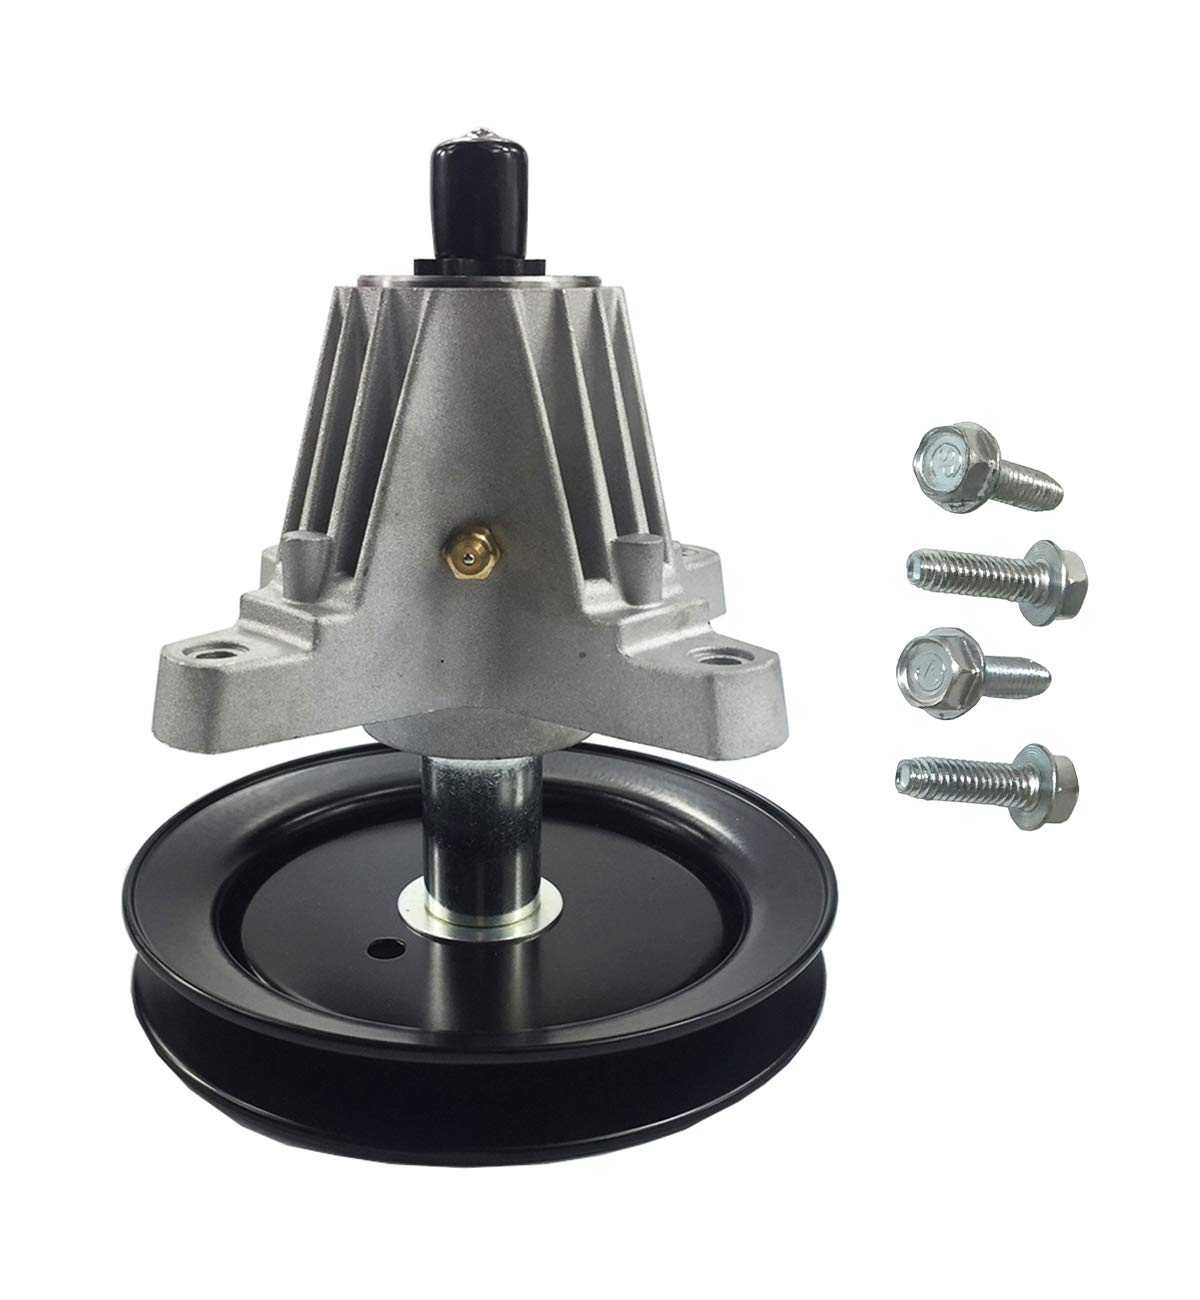 Parts Club Lawn Mower Deck Spindle Assembly Replaces Cub Cadet MTD 918-04822,618-04822,30-8001,14328,82-058 by Parts Club